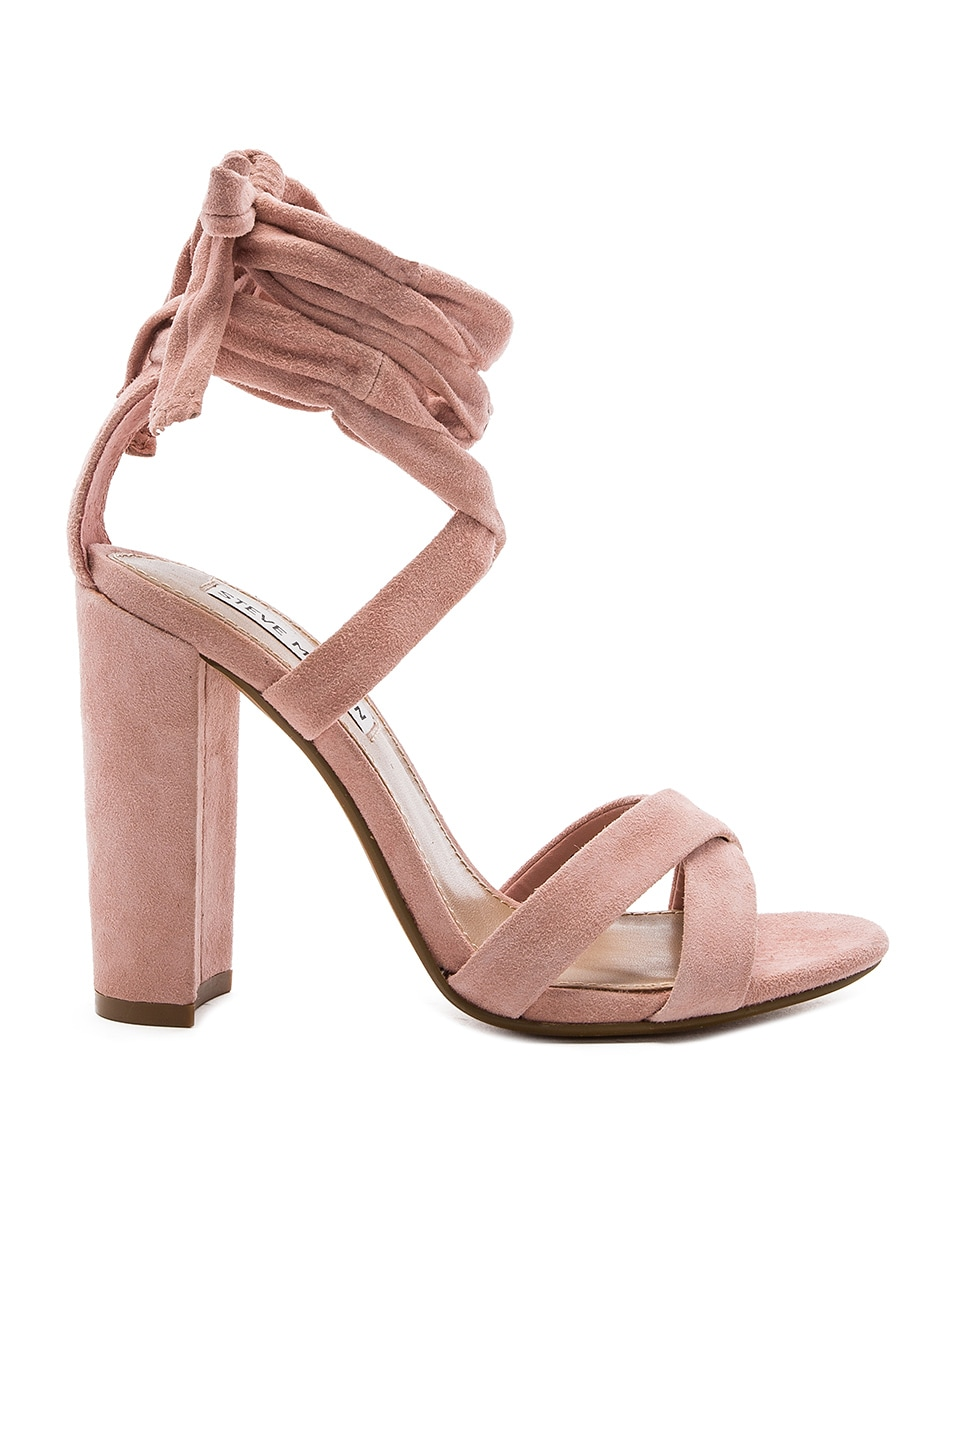 Steve Madden Christey Heel in Light Pink